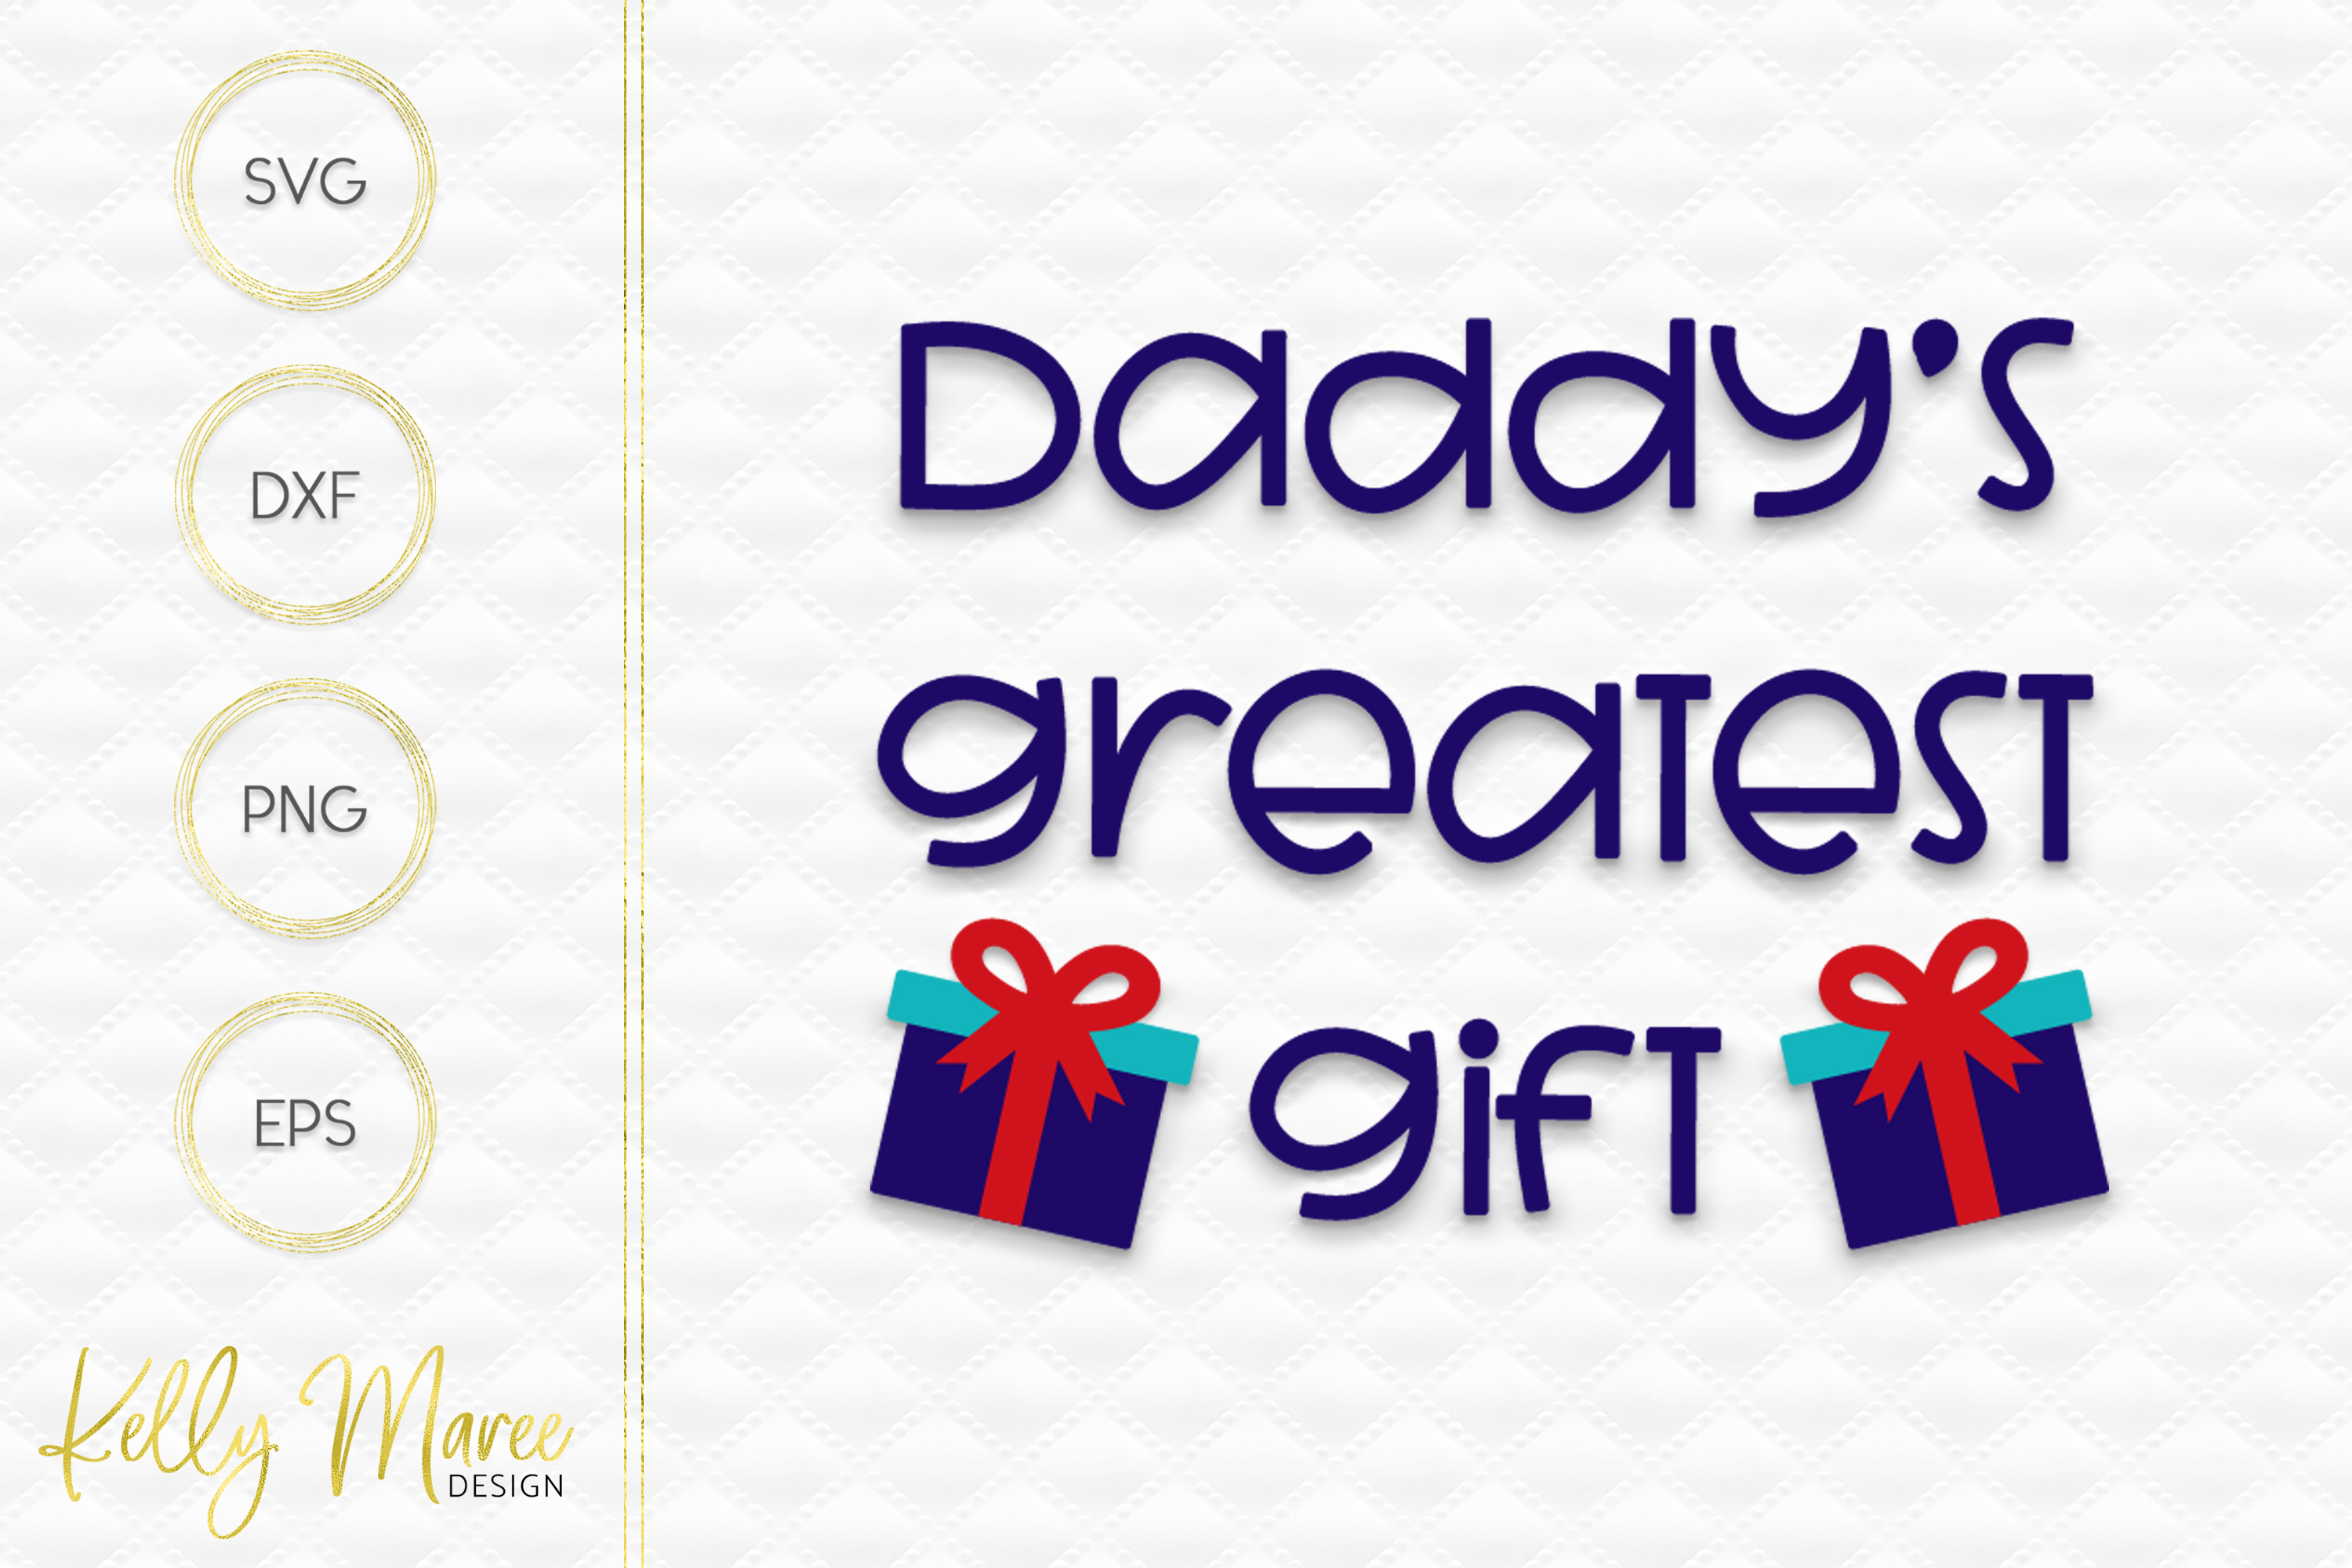 Daddy's Greatest Gift SVG File example image 3